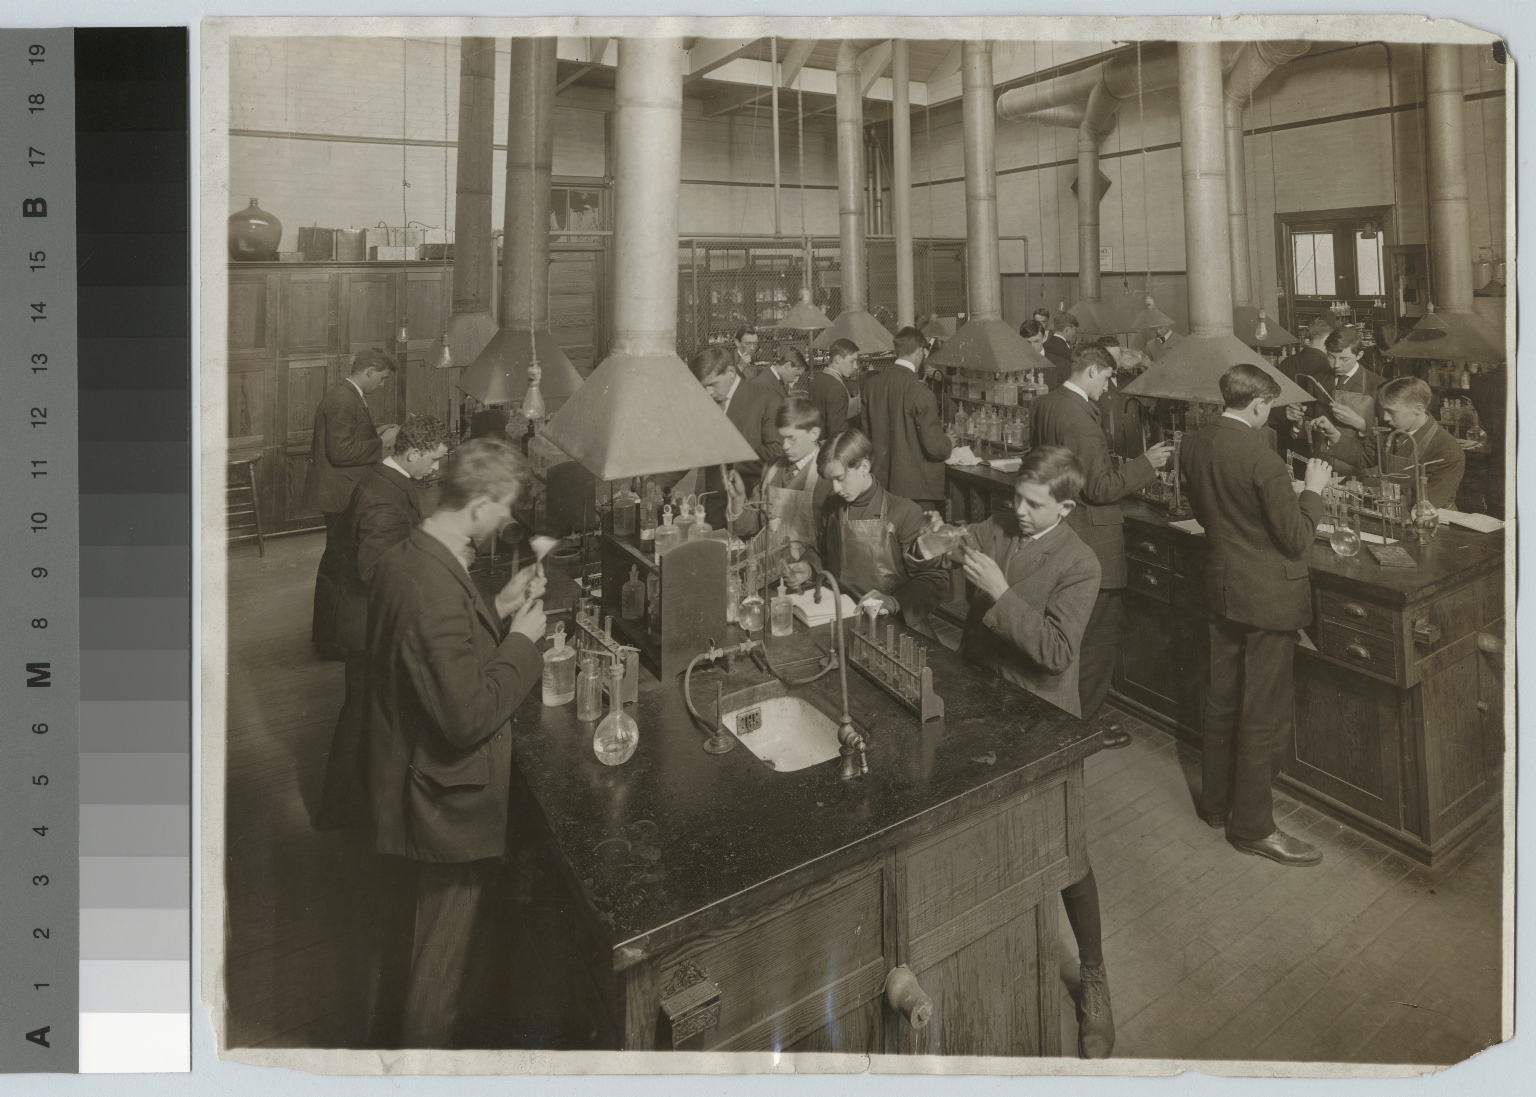 Academics, chemistry, Rochester Athenaeum and Mechanics Institute chemistry laboratory with students working on experiments, [1905-1915]